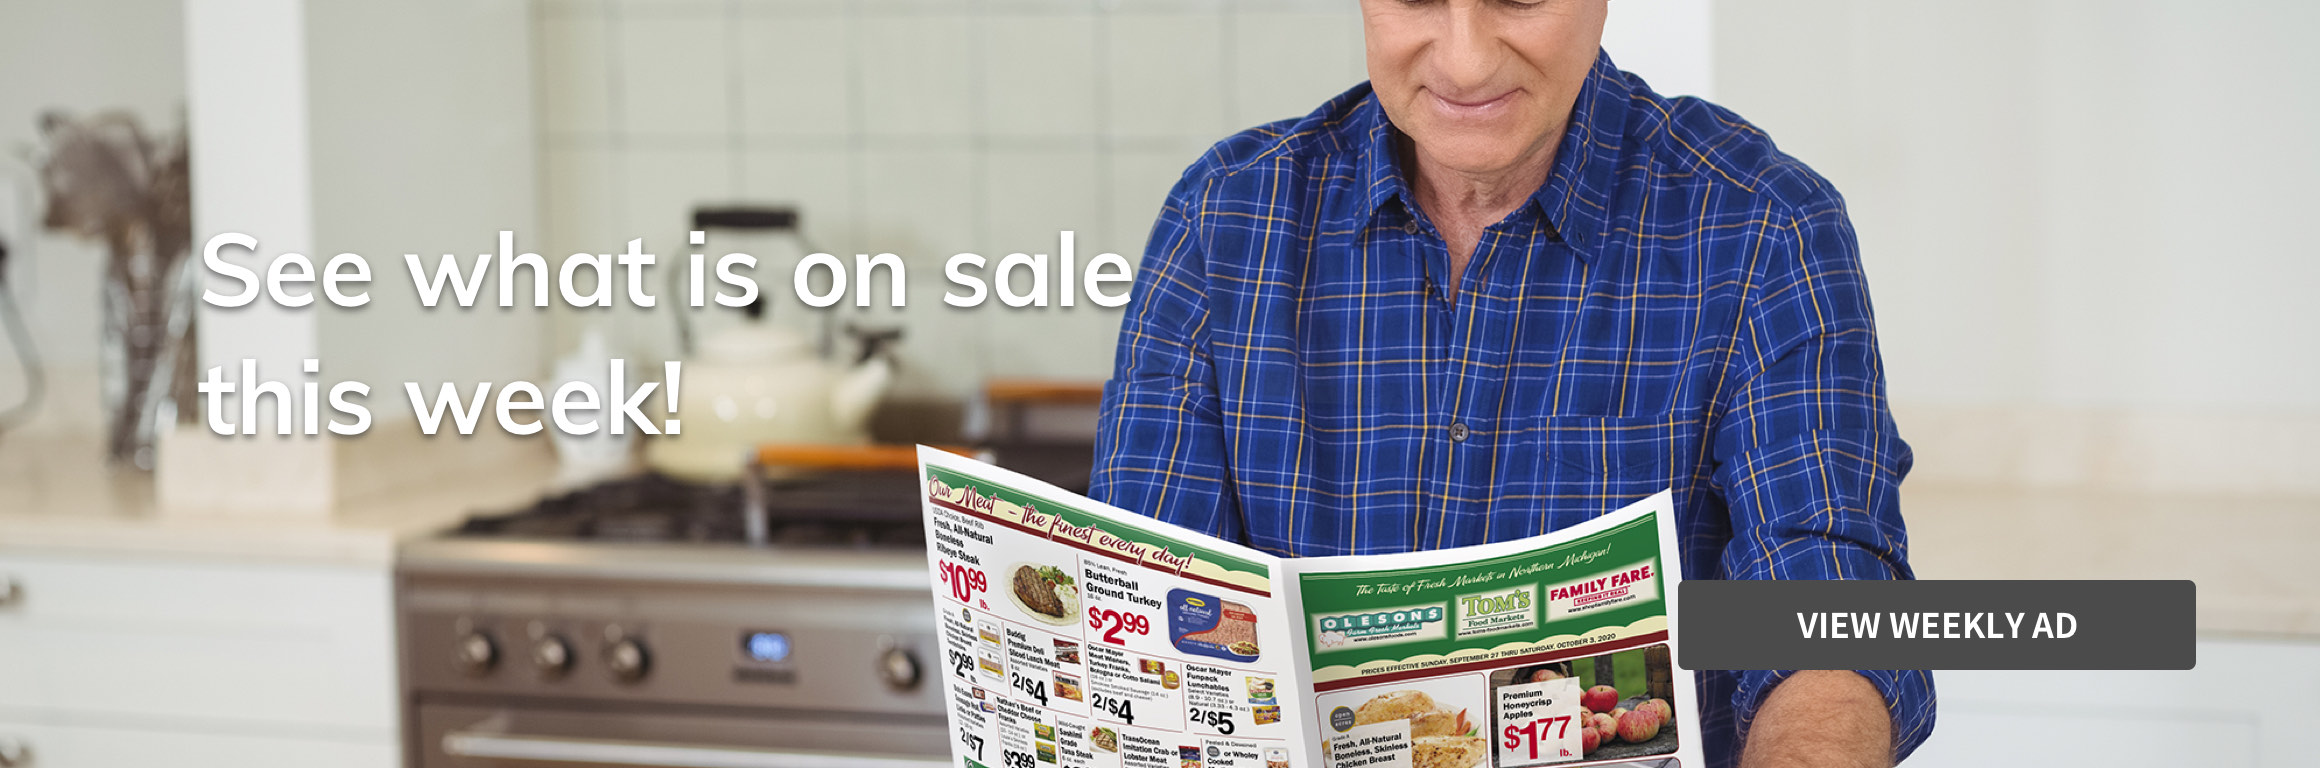 Man reading weekly ad in a kitchen.